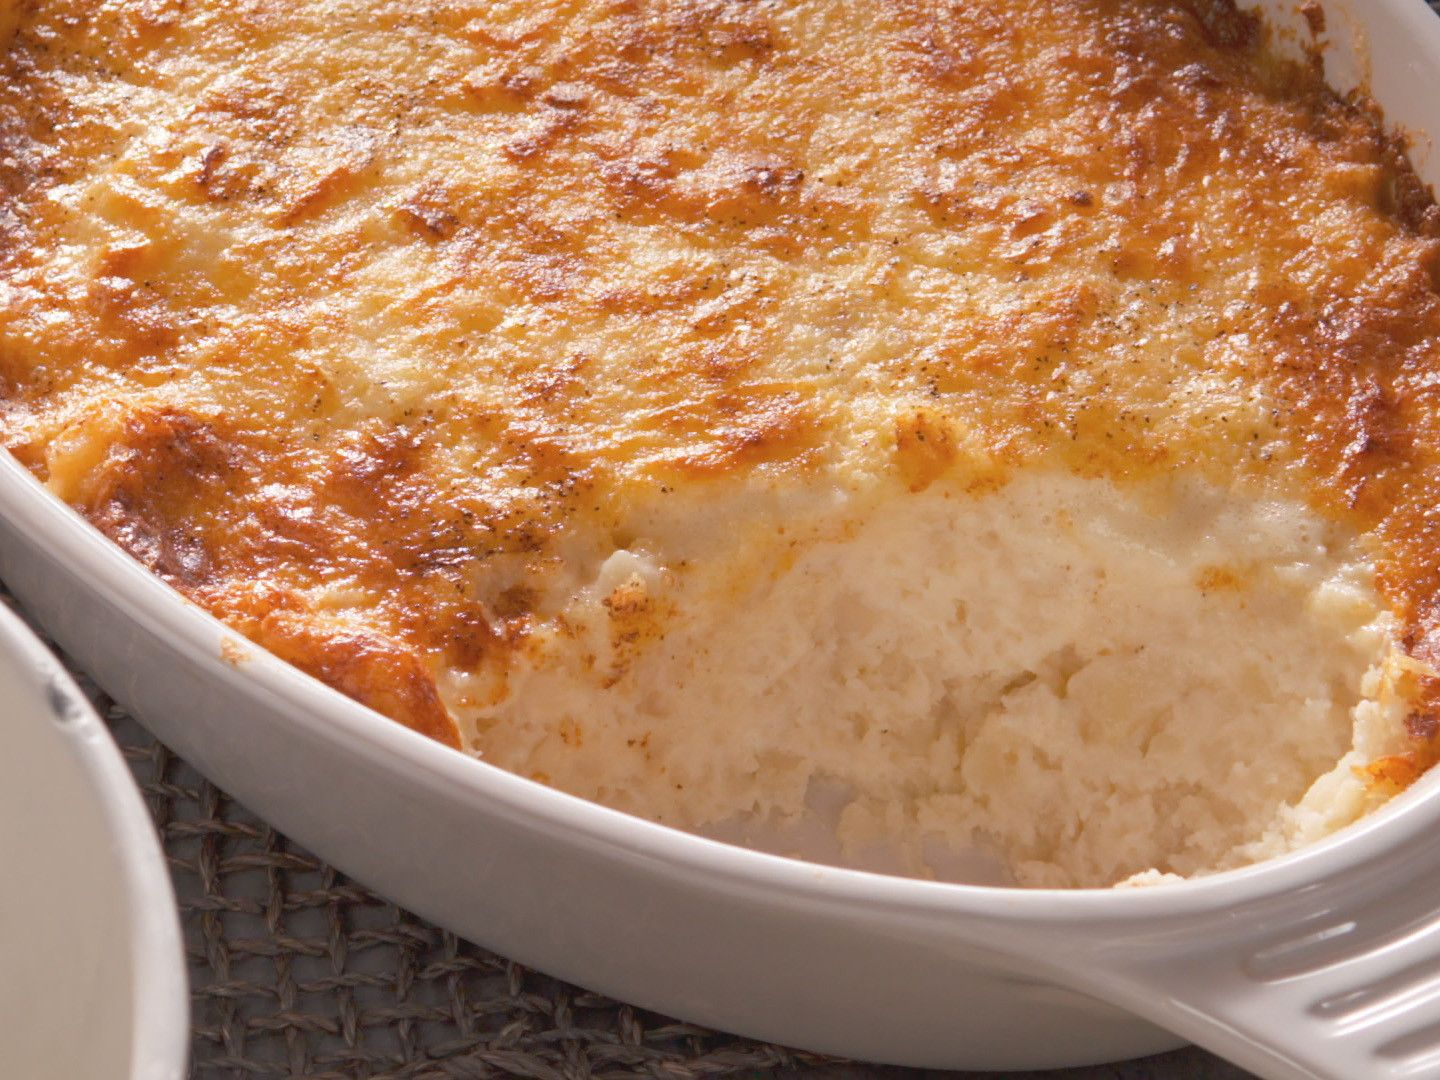 Creamy and Tangy Mashed Potatoes